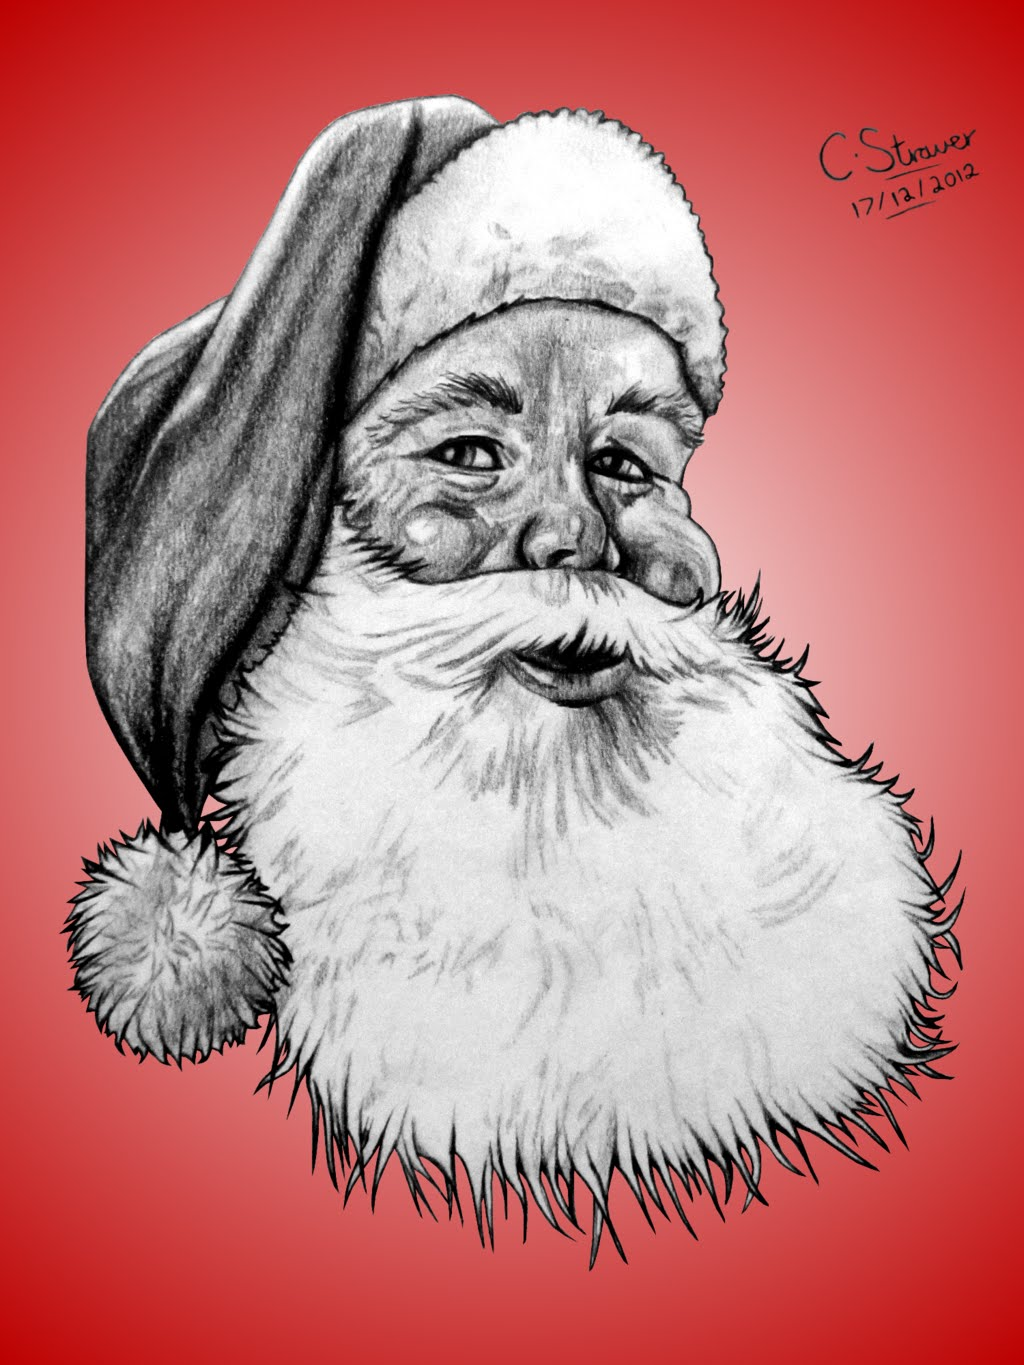 1024x1365 How To Draw Santa Cruise With Pencil (Merry Christmas Day)